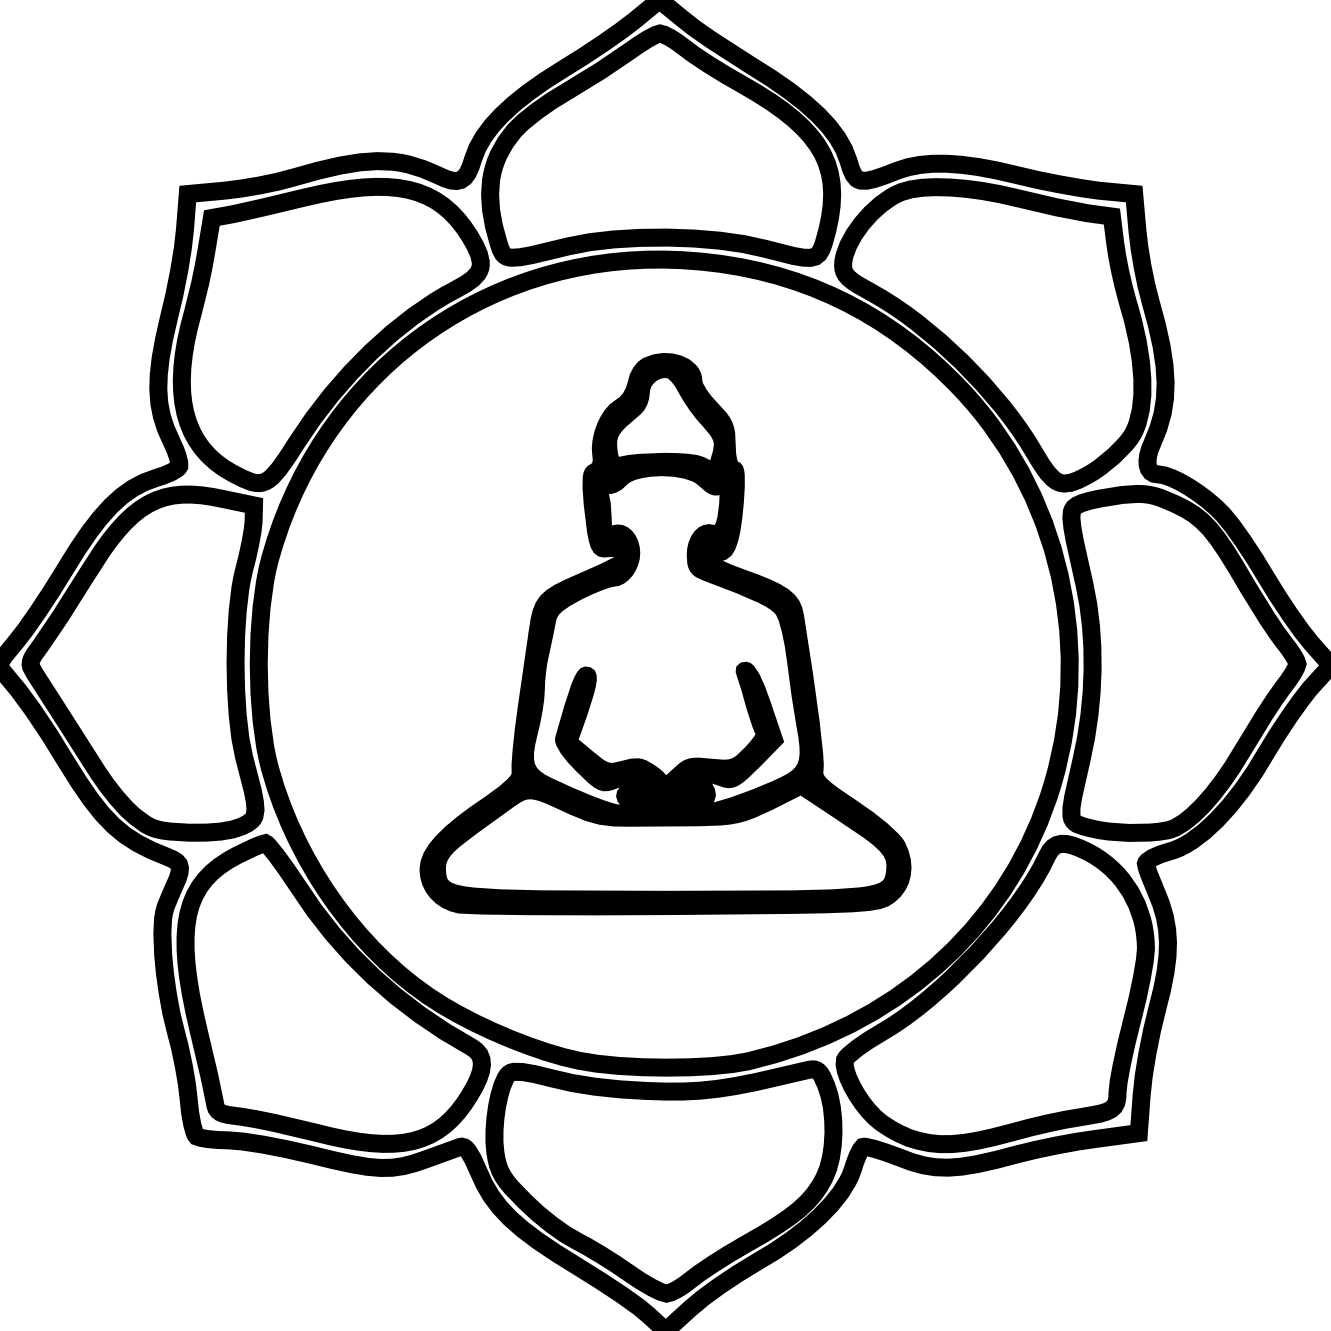 Free buddhism cliparts download. Buddha clipart easy draw svg transparent stock